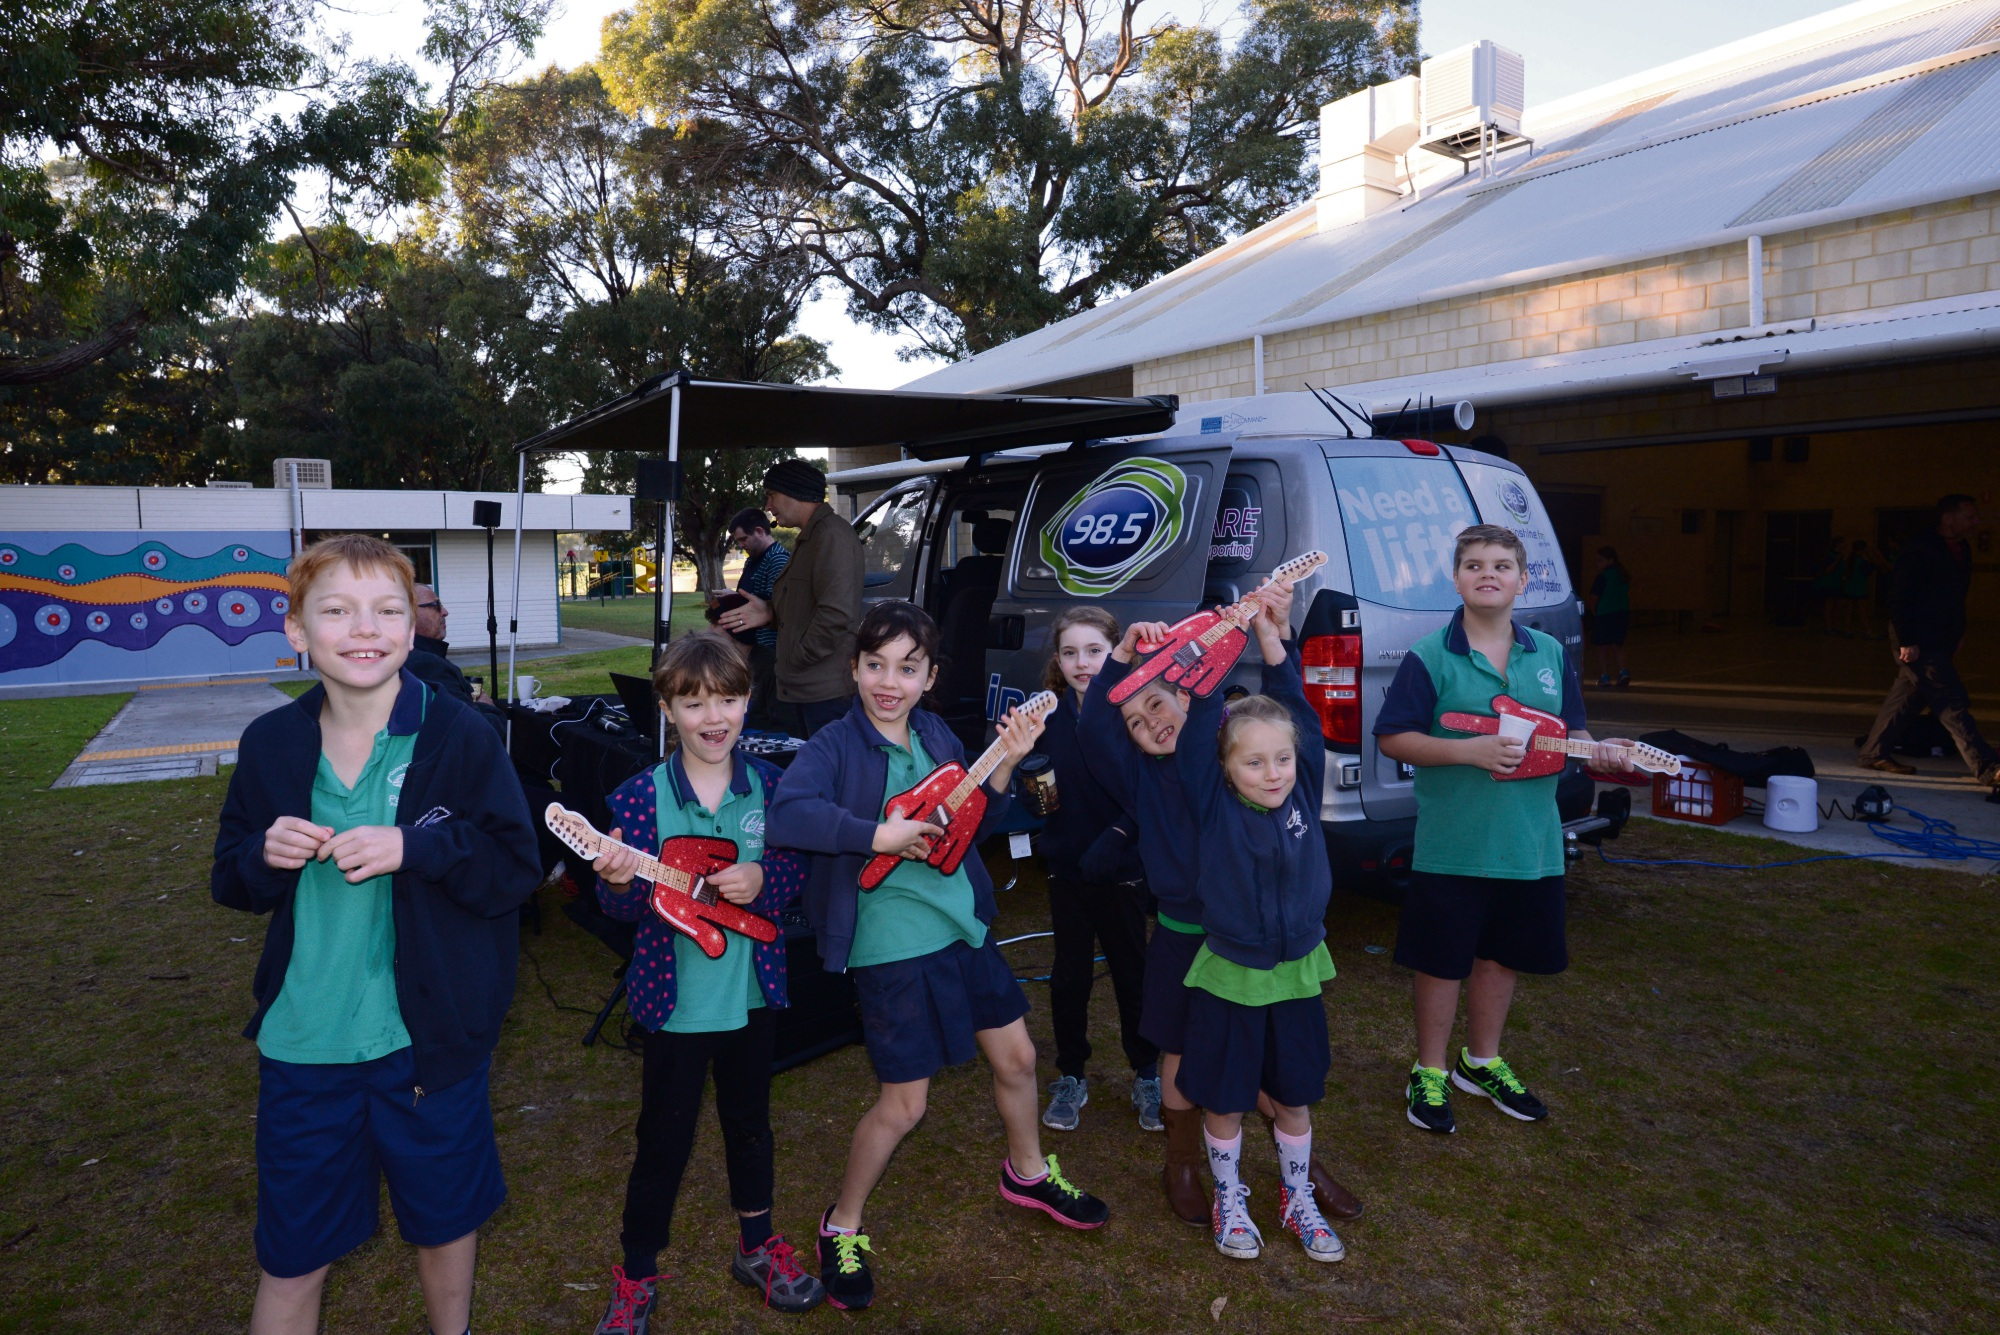 Padbury Primary School students having fun at Free Coffee Friday.